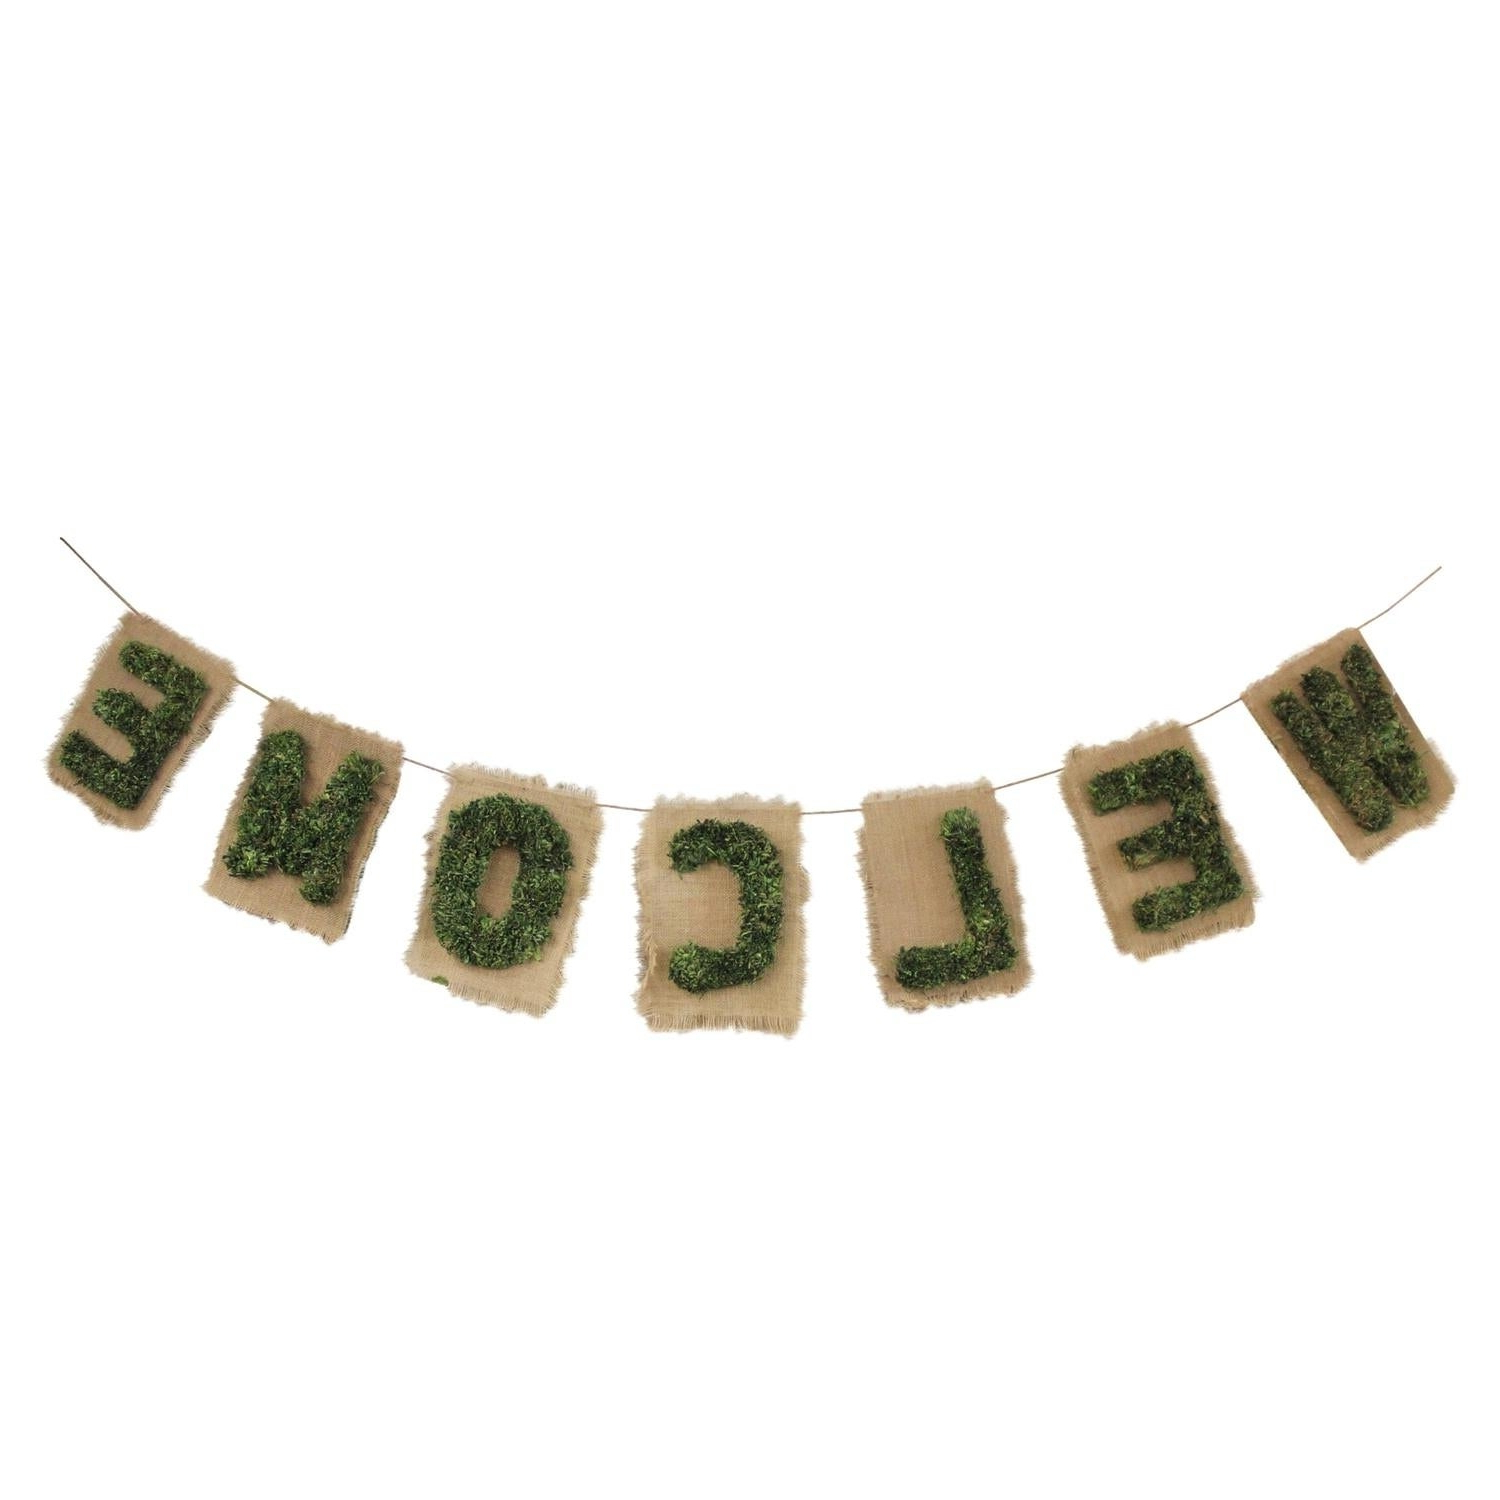 "Shop 6' Cozy Twine Brown And Green €Œwelcome"" Hanging Wall Intended For 2020 In A Word ""welcome"" Wall Decor (Gallery 17 of 20)"